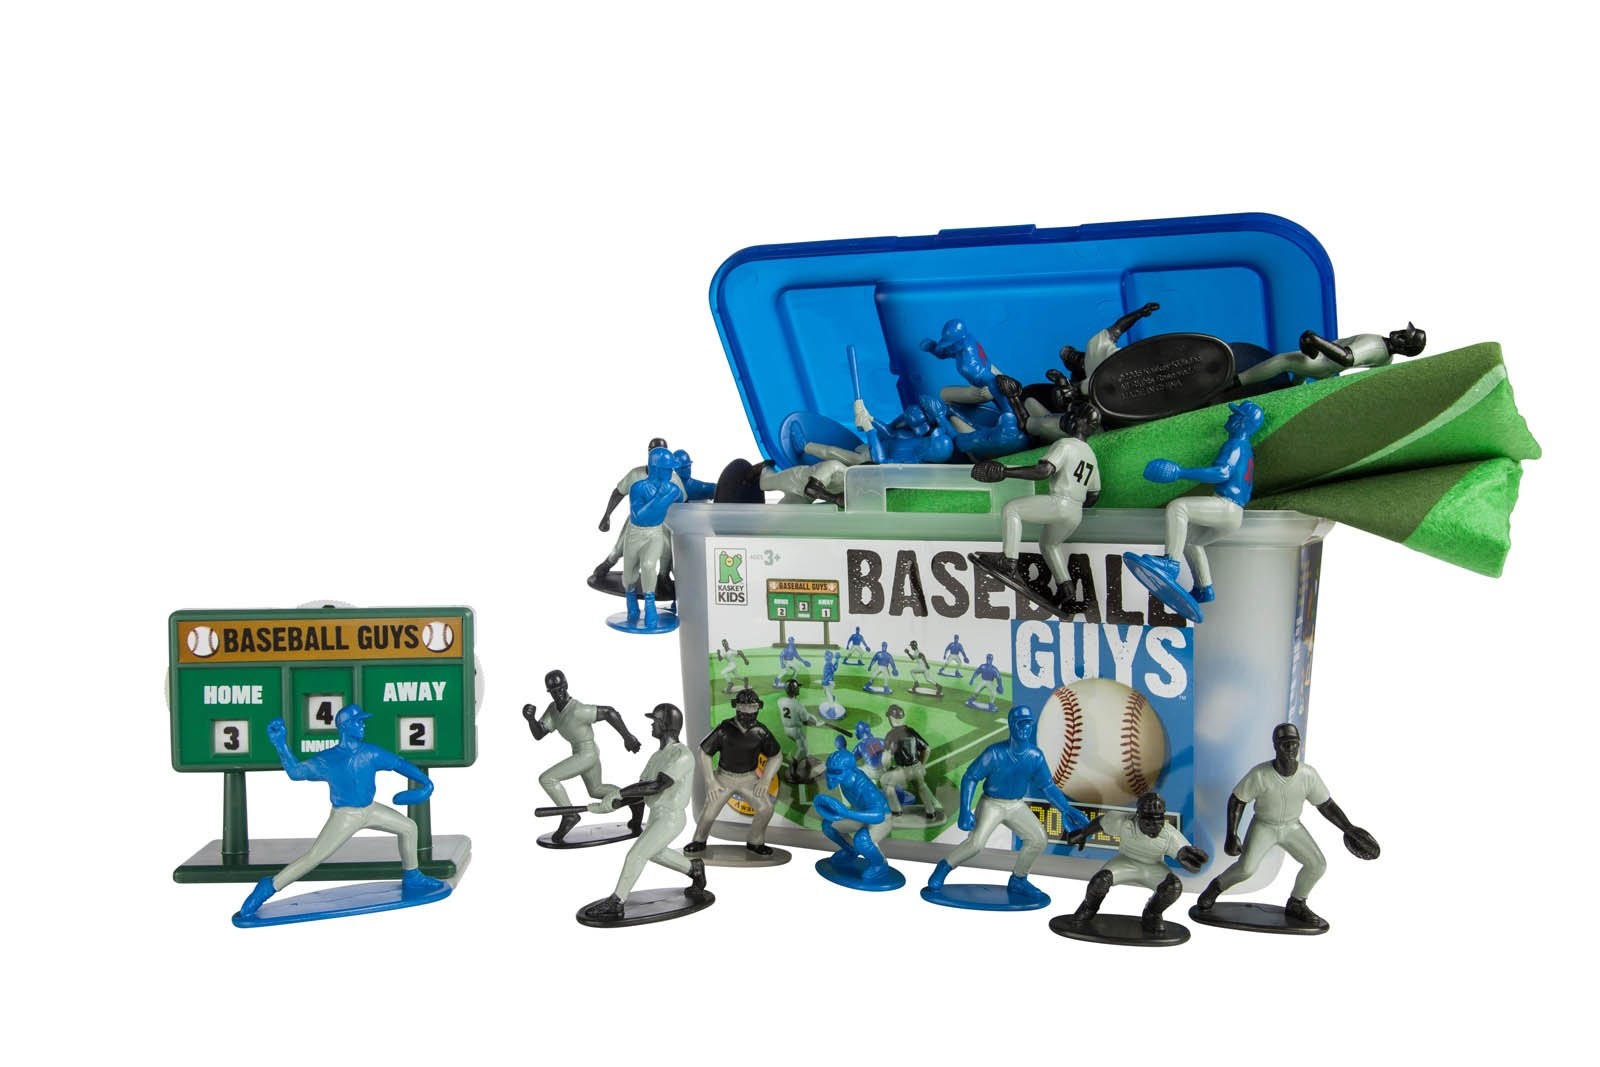 Kaskey Kids Baseball Guys: Black vs. Blue – Inspires Imagination with Open-Ended Play – Includes 2 Full Teams and More – For Ages 3 and Up